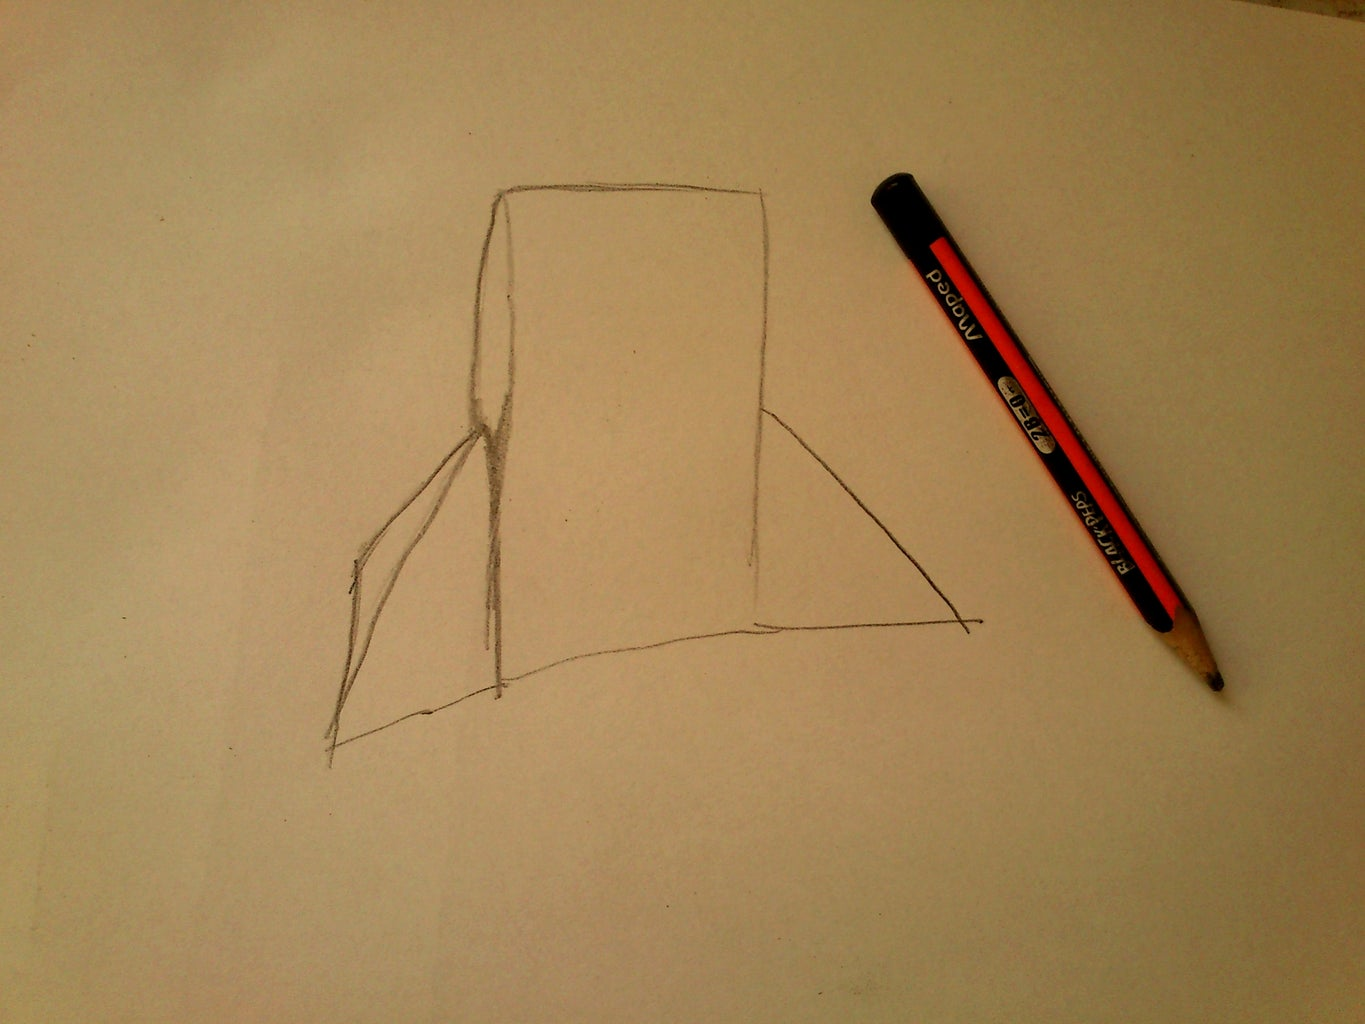 Sketching, Measuring and Cutting